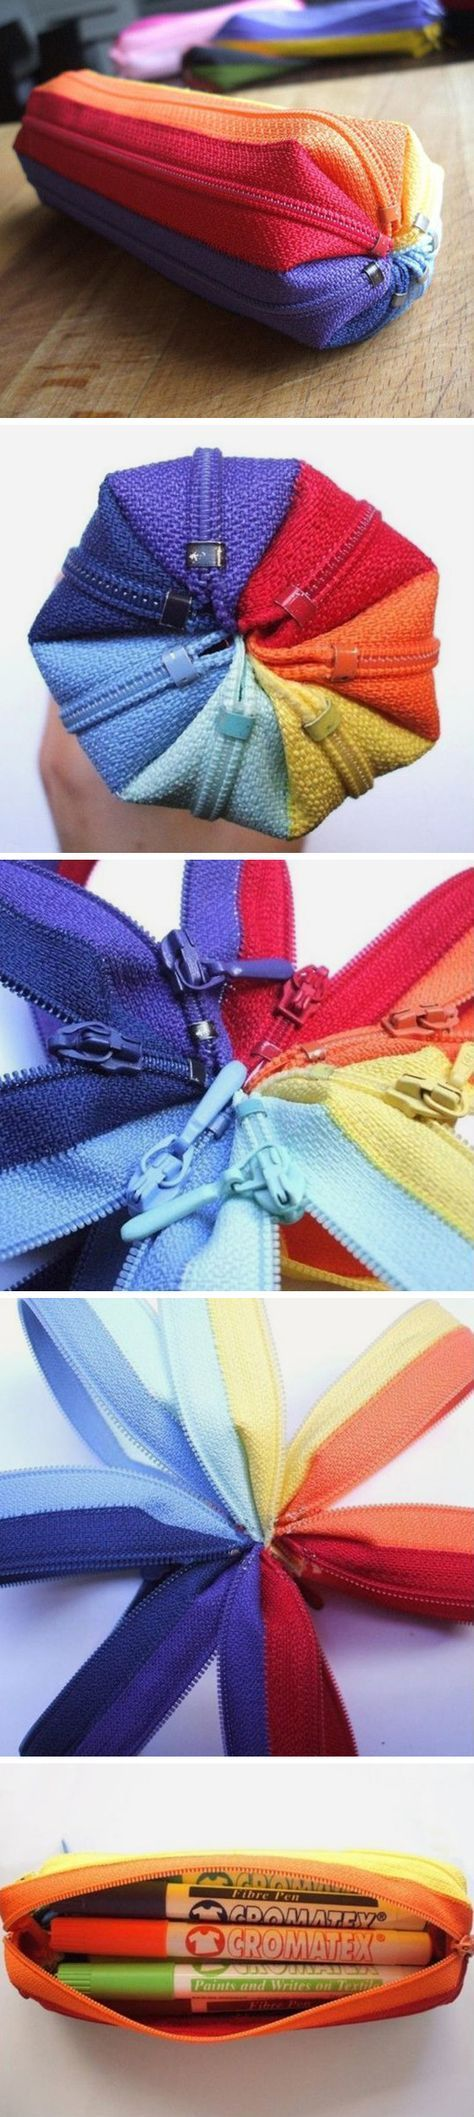 DIY Amazing Zipper Projects You Should Try Today7